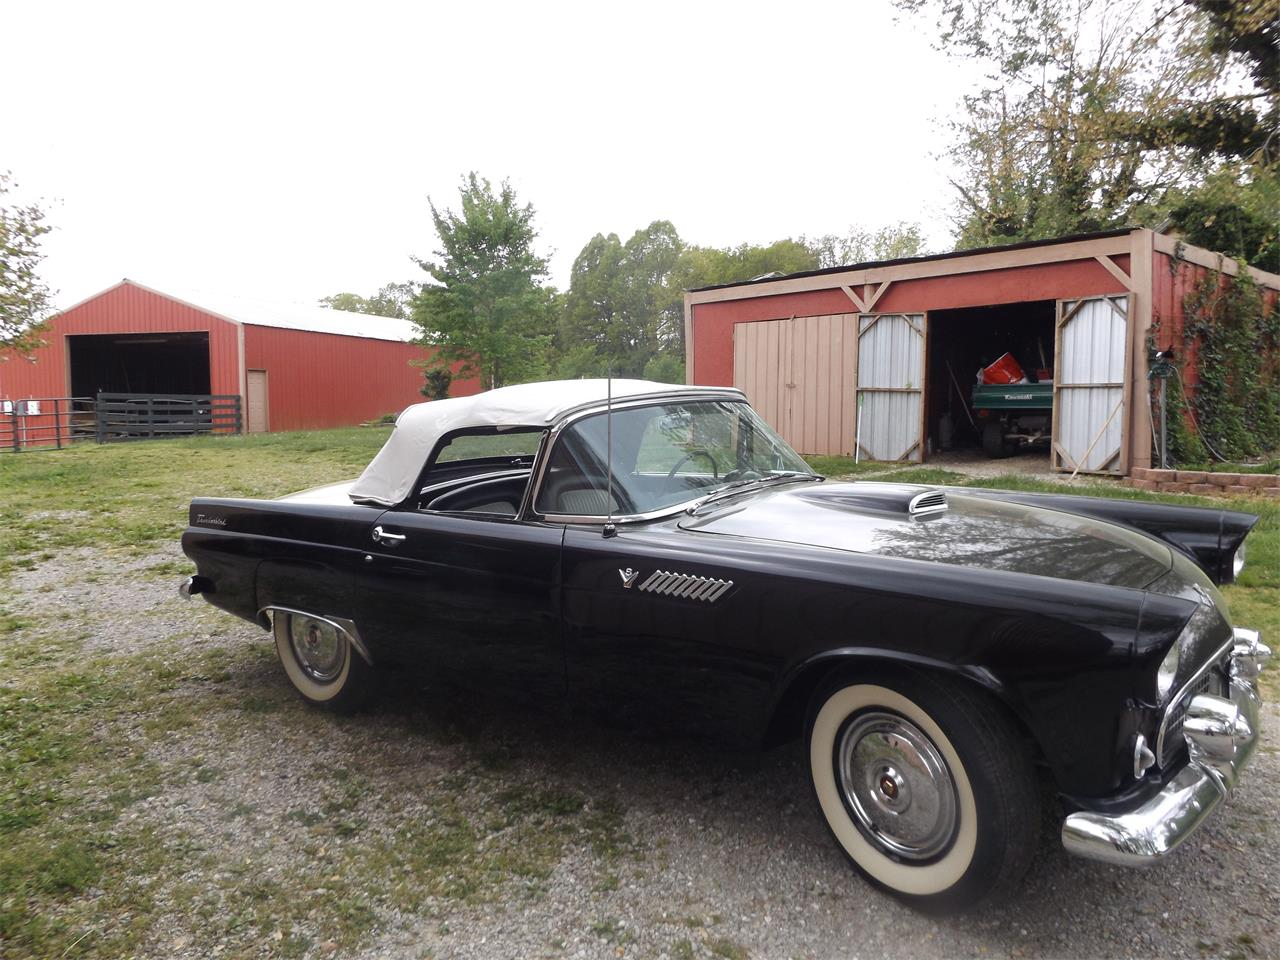 Large Picture of Classic 1955 Ford Thunderbird located in Mountain View Missouri - $31,500.00 Offered by a Private Seller - PZ9L